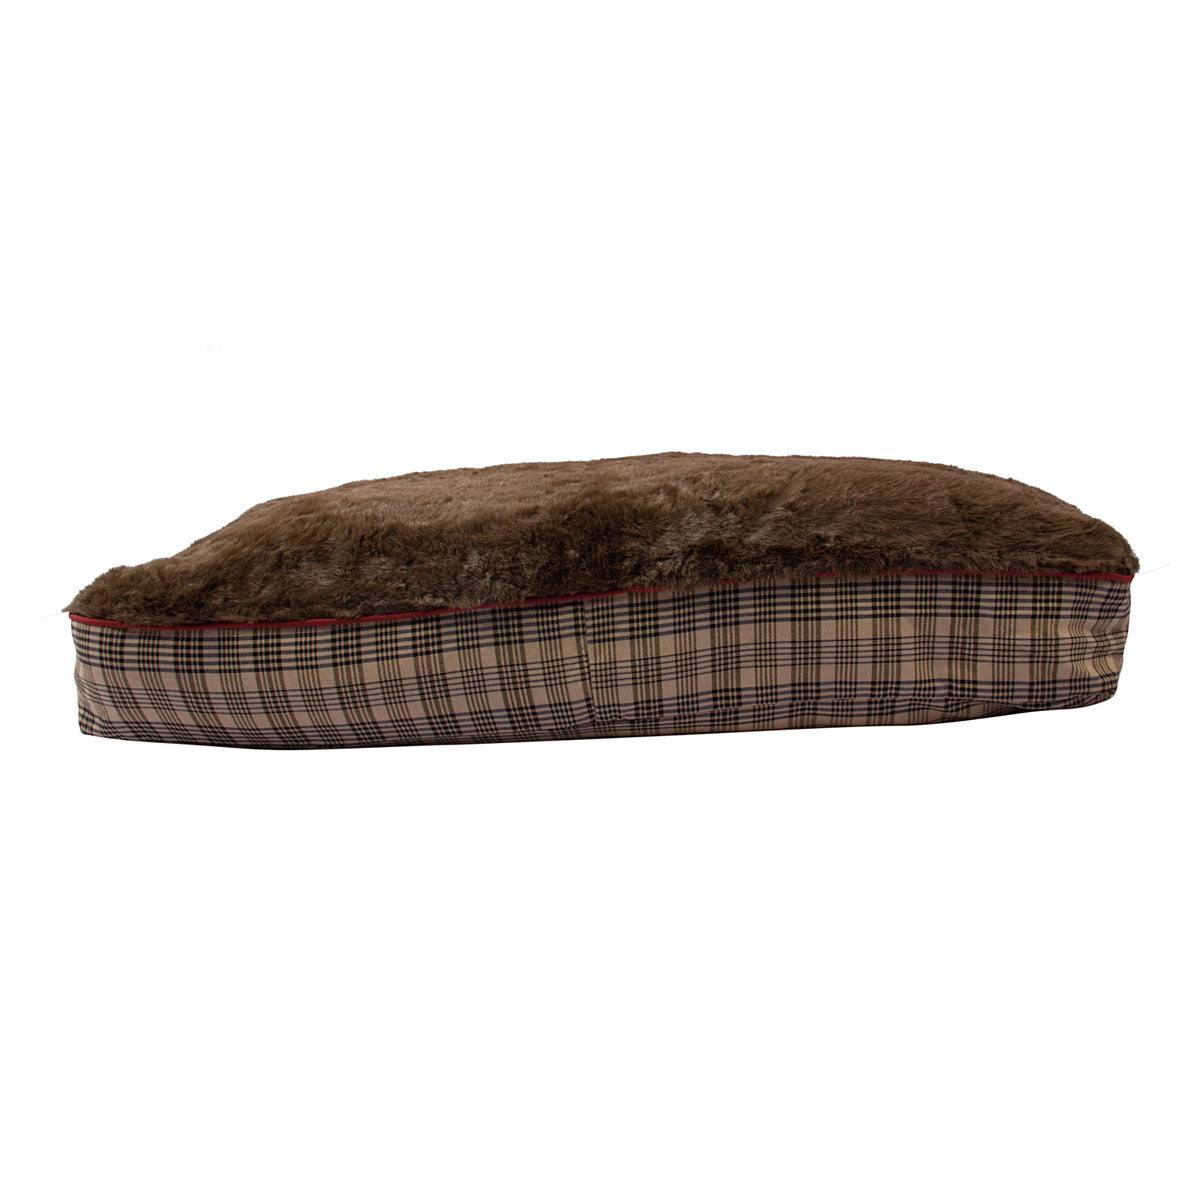 Baker Plaid Rectangular Dog Bed - Baker - Breeches.com